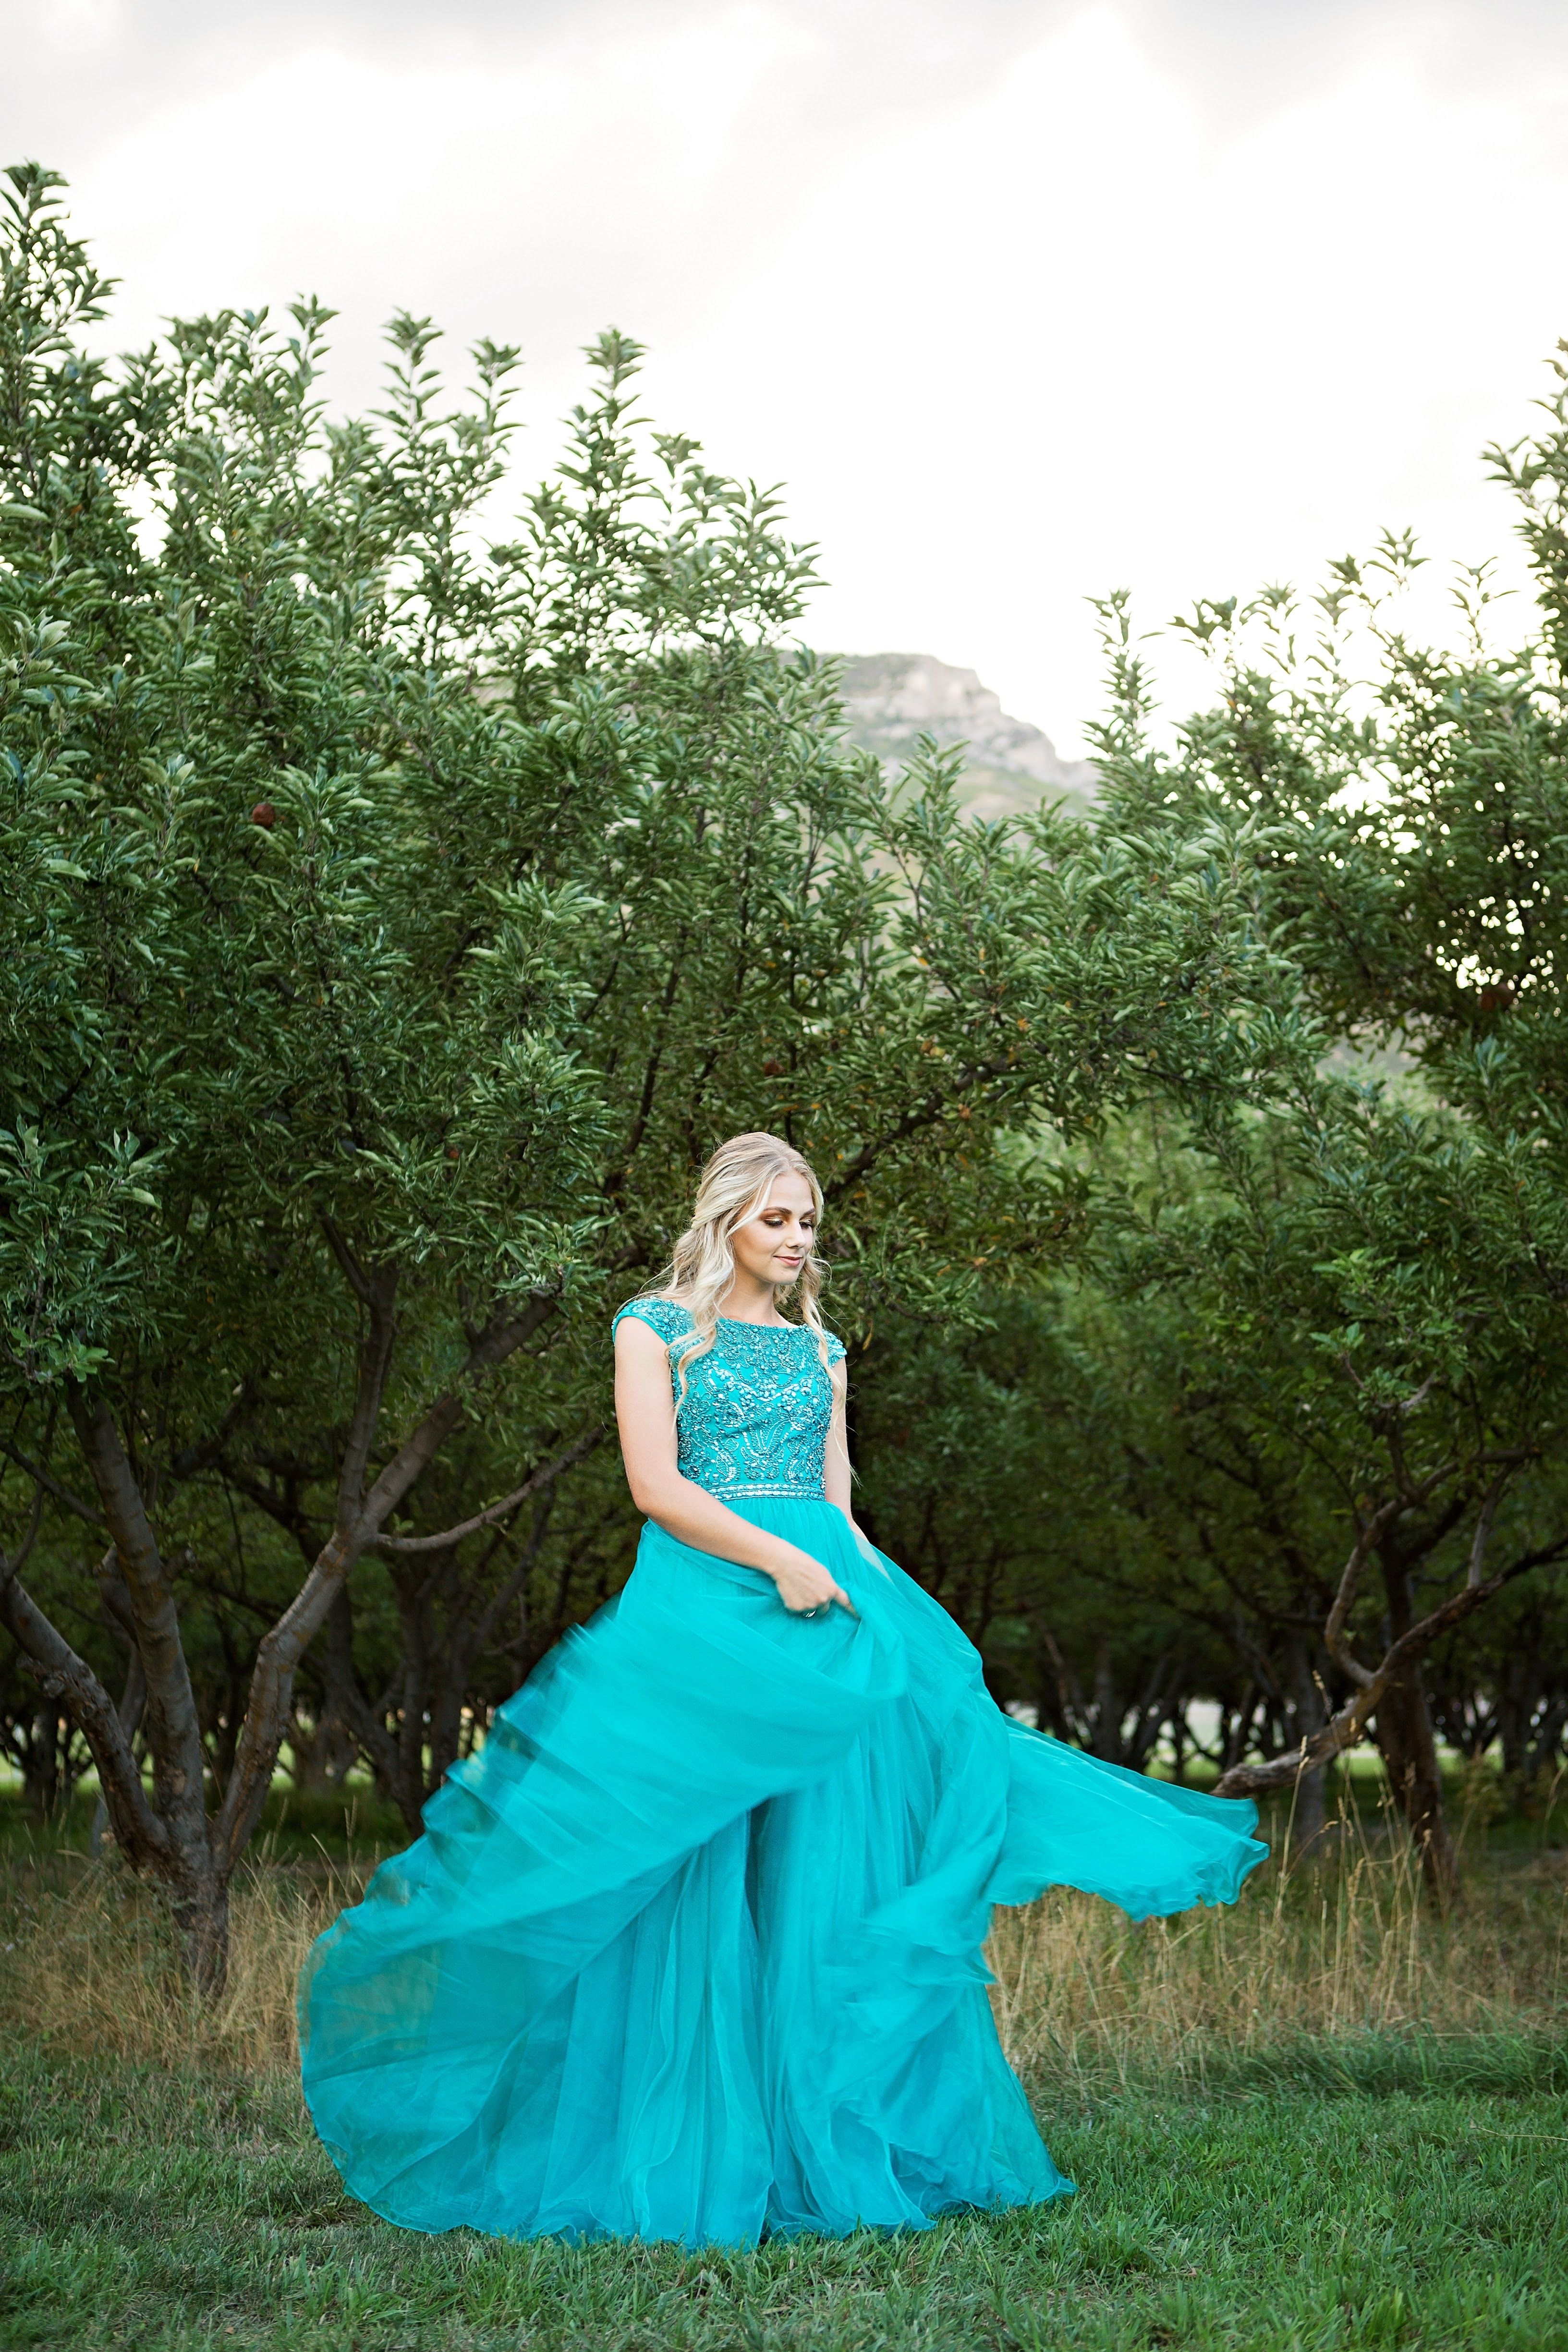 Green dress prom  Sherri Hill Teal Turquoise Flowy with Beaded Bodice and Sleeves